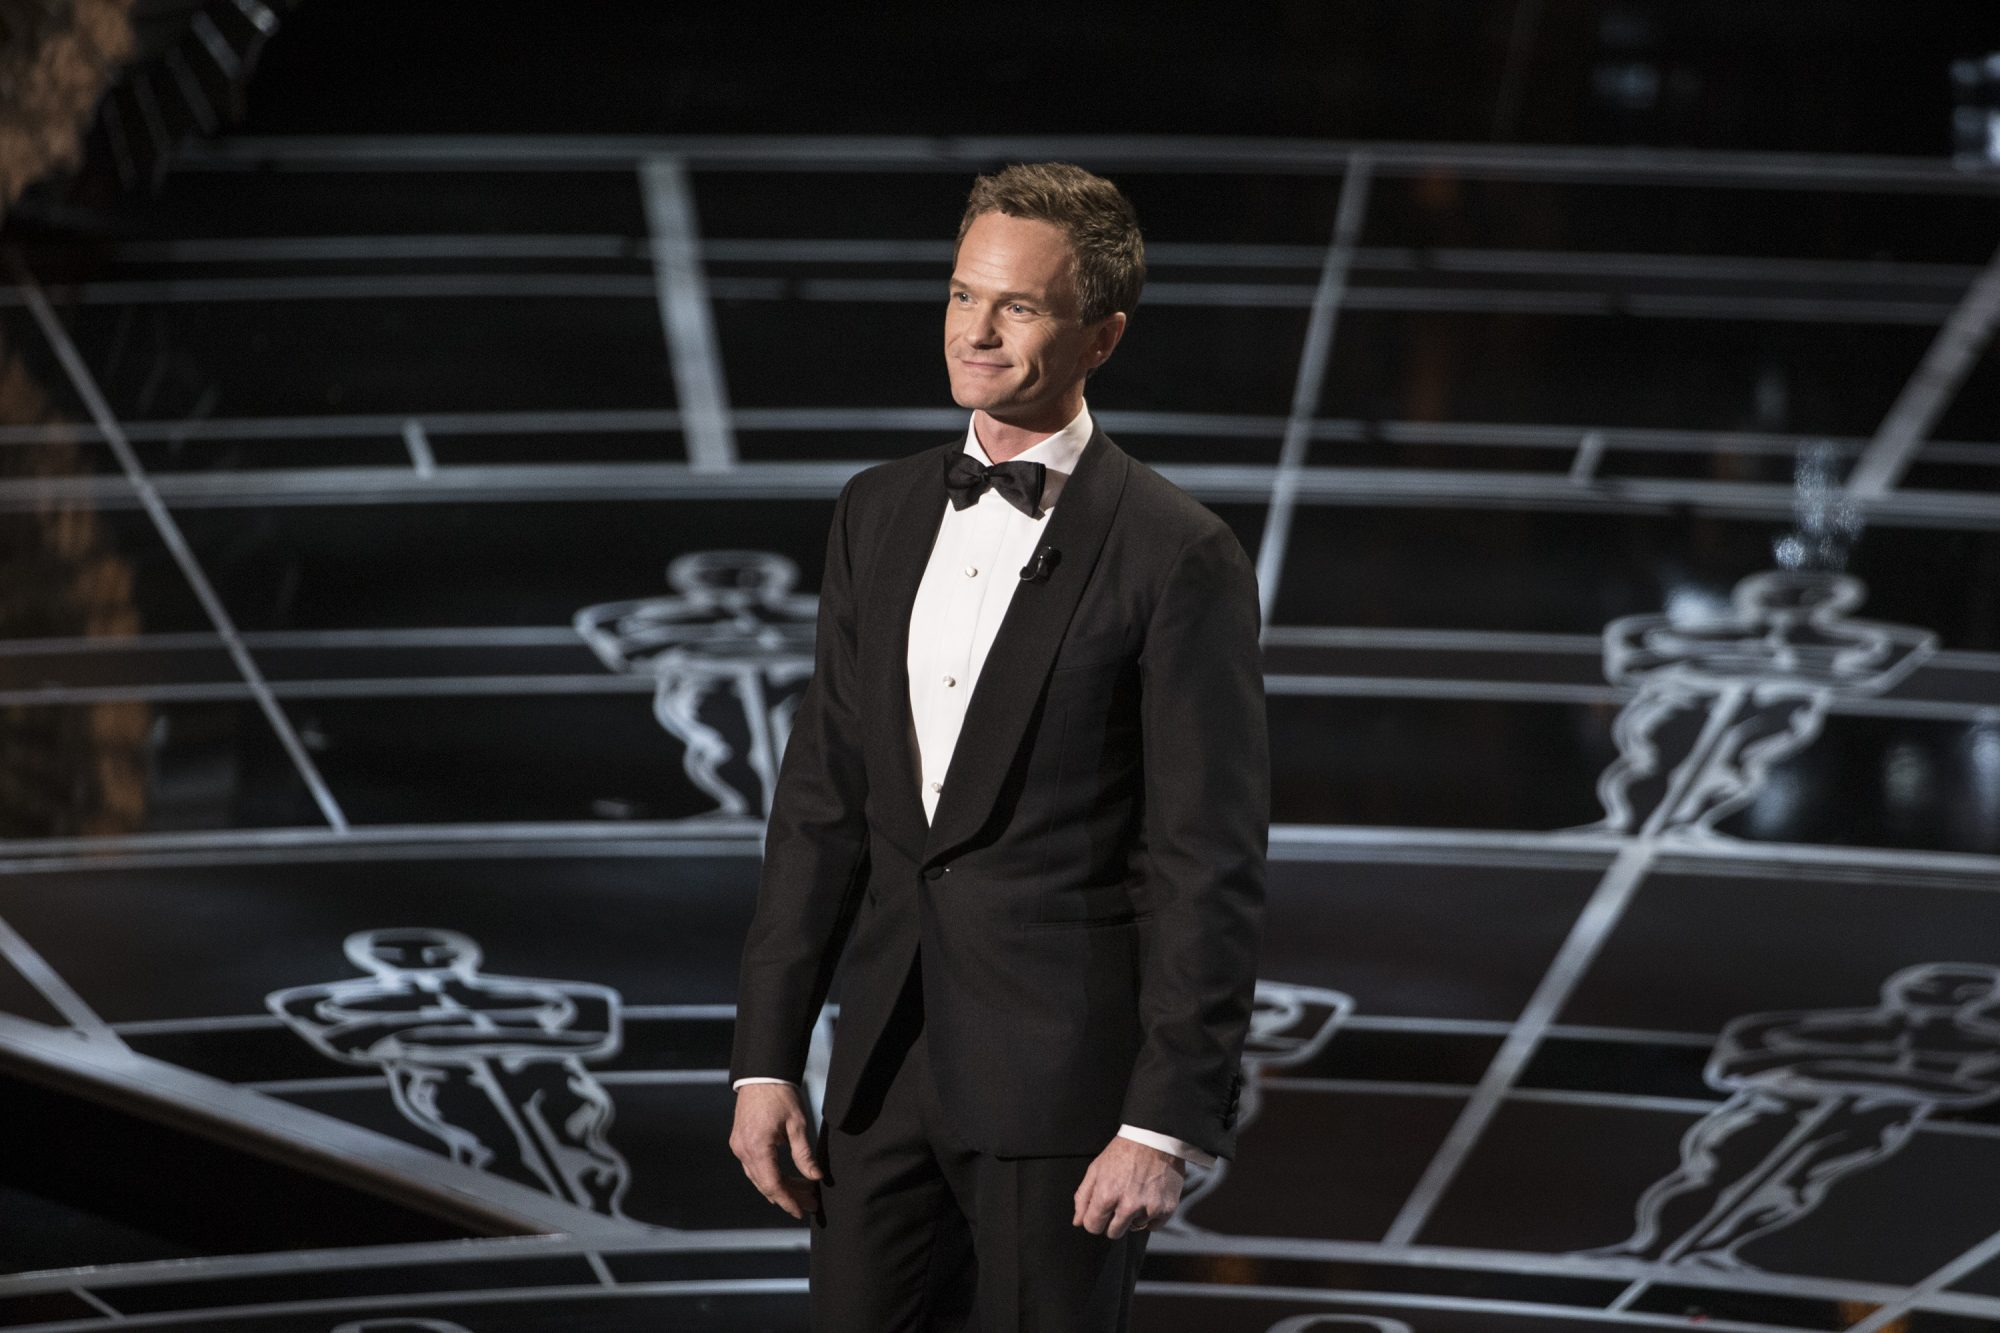 ABC's Coverage Of The 87th Annual Academy Awards